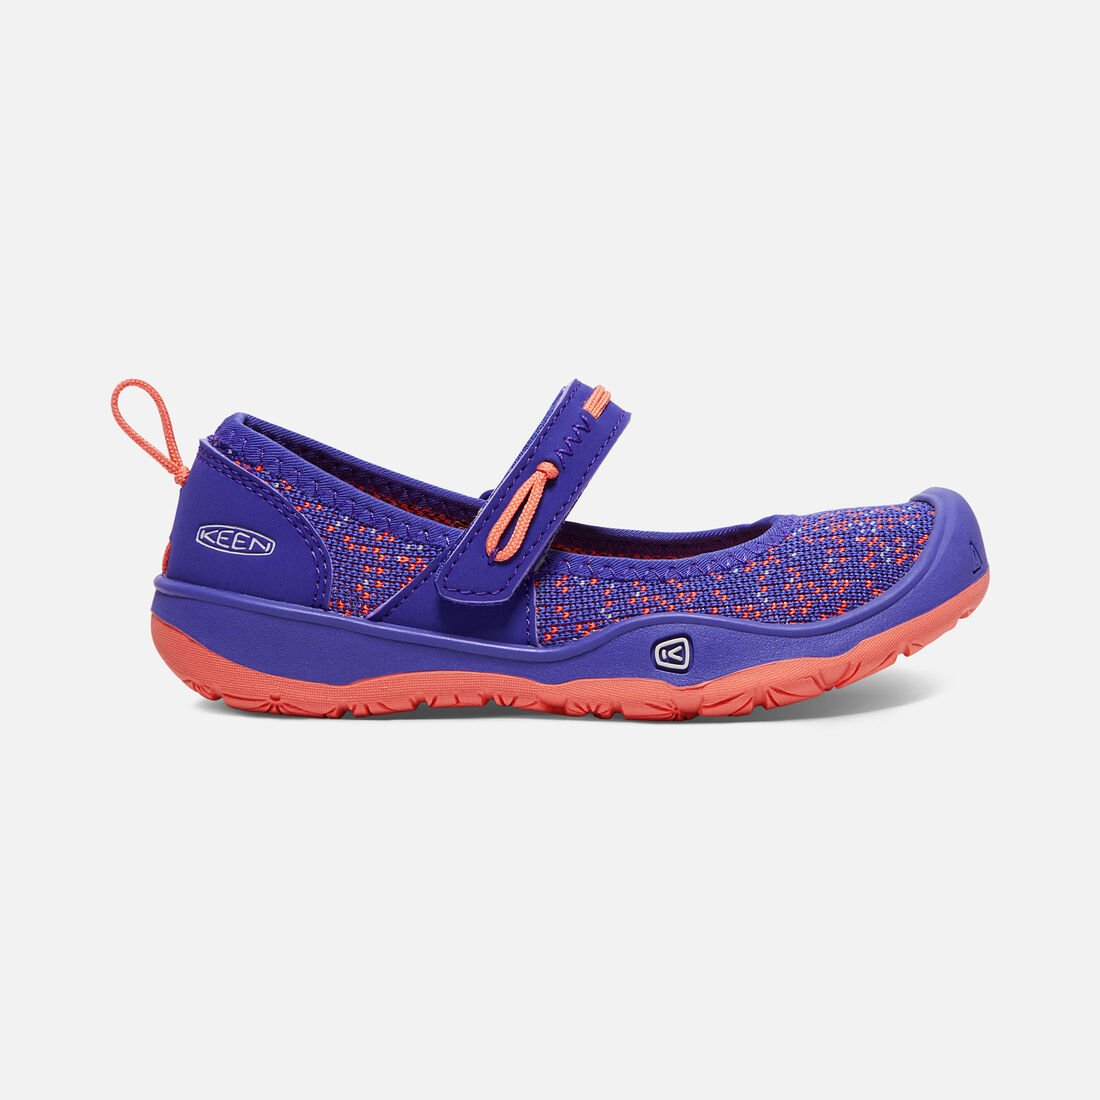 Little Kids' MOXIE MARY JANE in Royal Blue/Fusion Coral - large view.